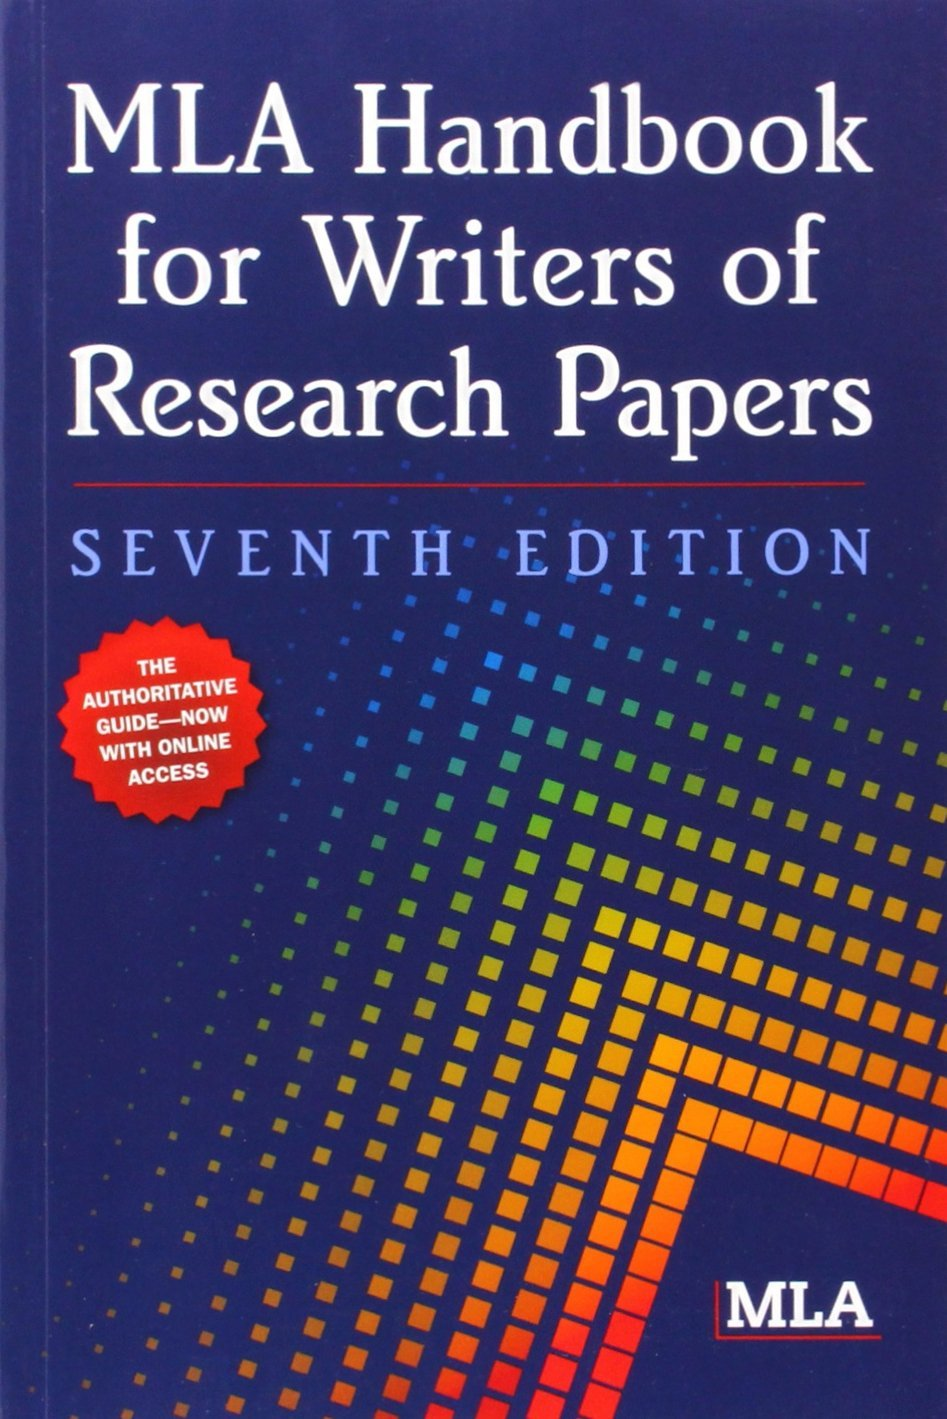 001 Research Paper According To The Mla Handbook For Writers Of Papers Unforgettable 8th Edition Pdf 7th 2009 Full